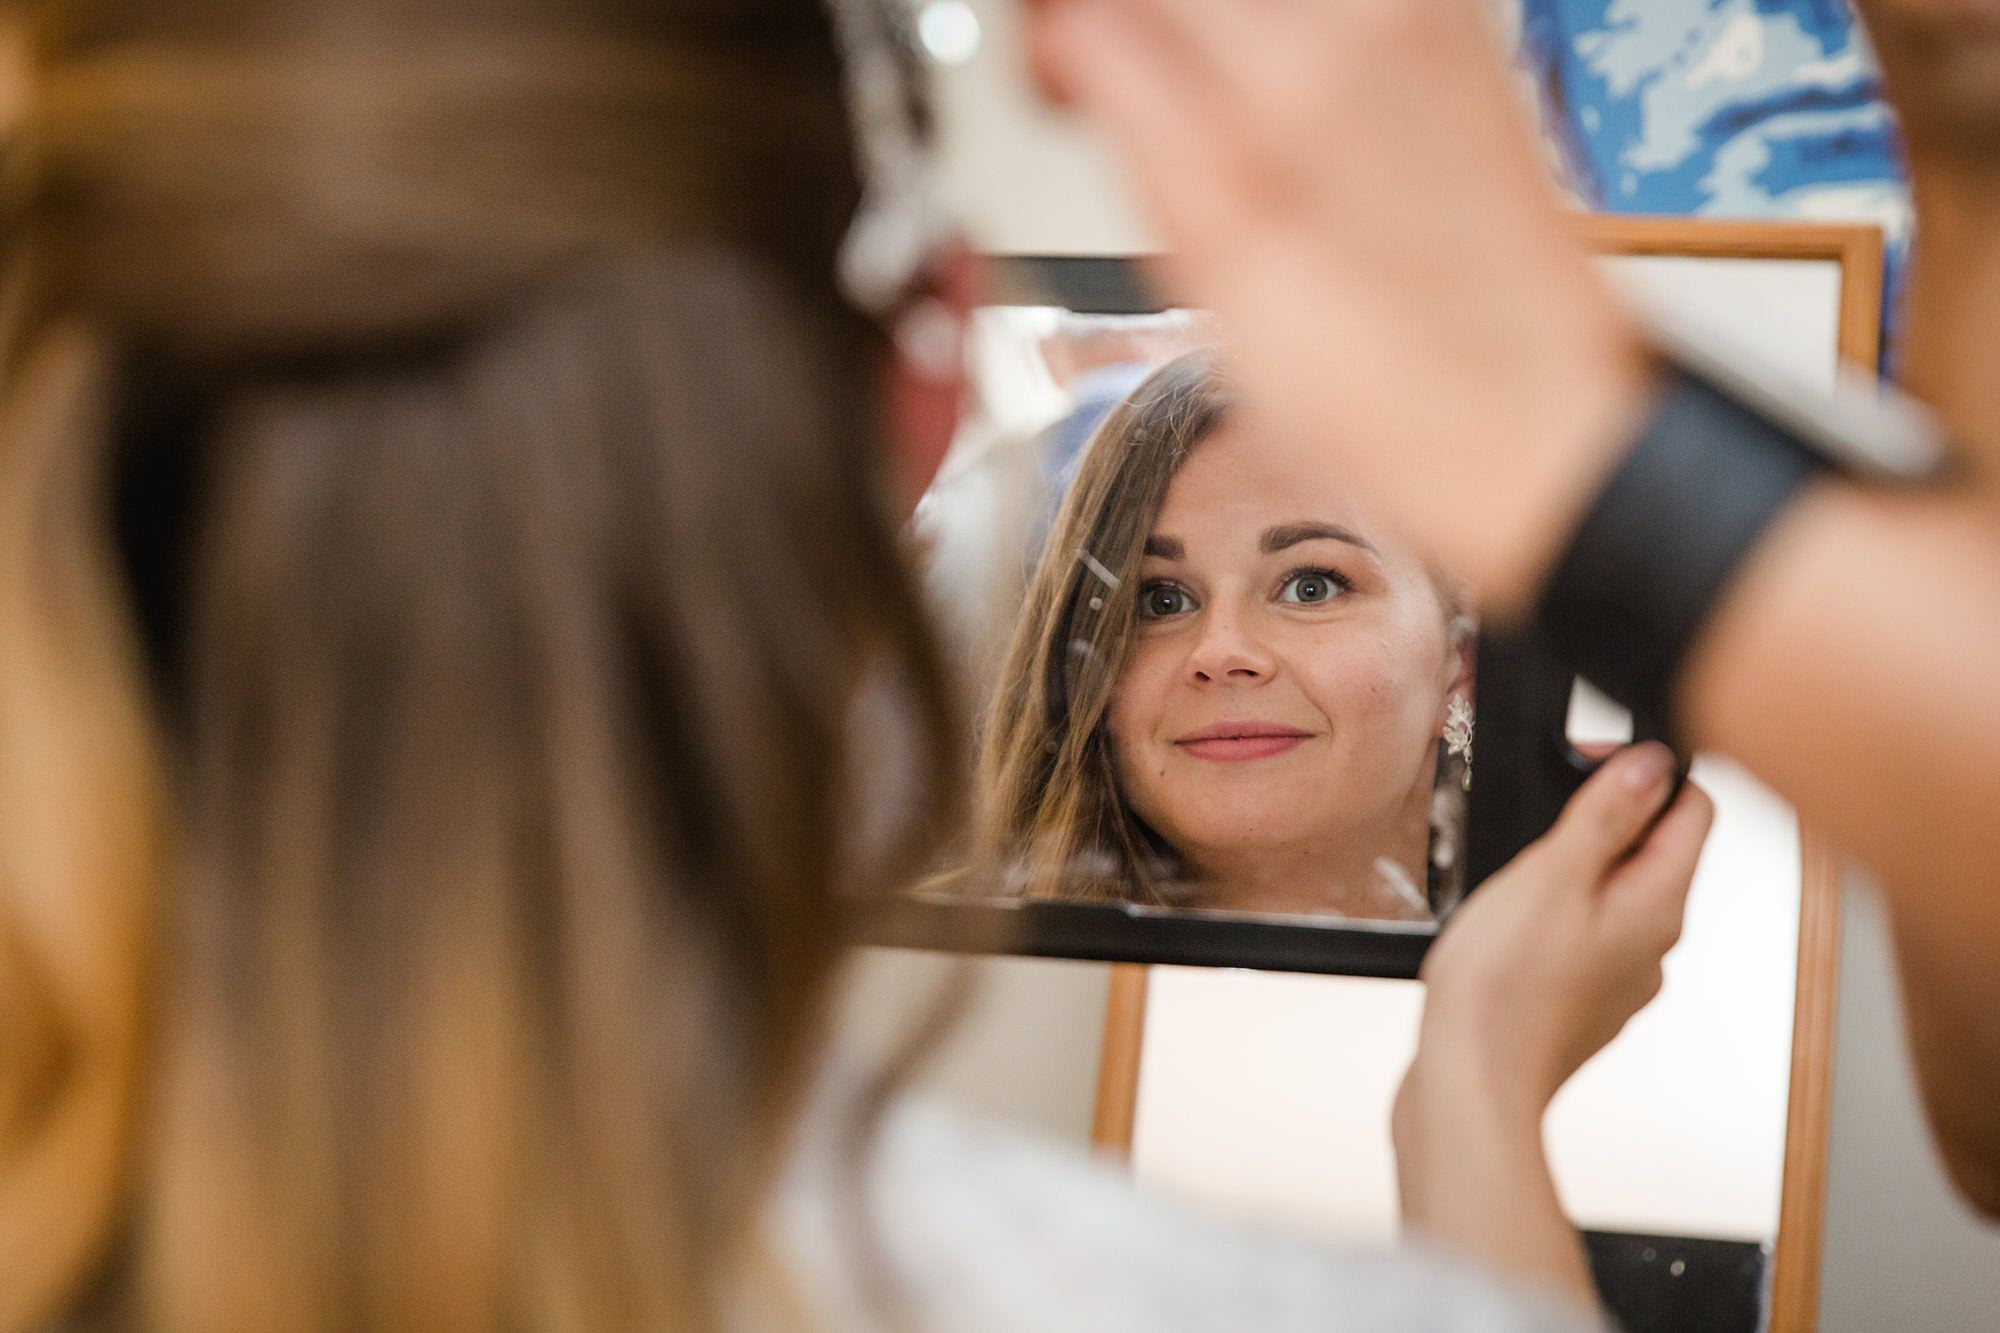 Writtle university college wedding bride looks in the mirror